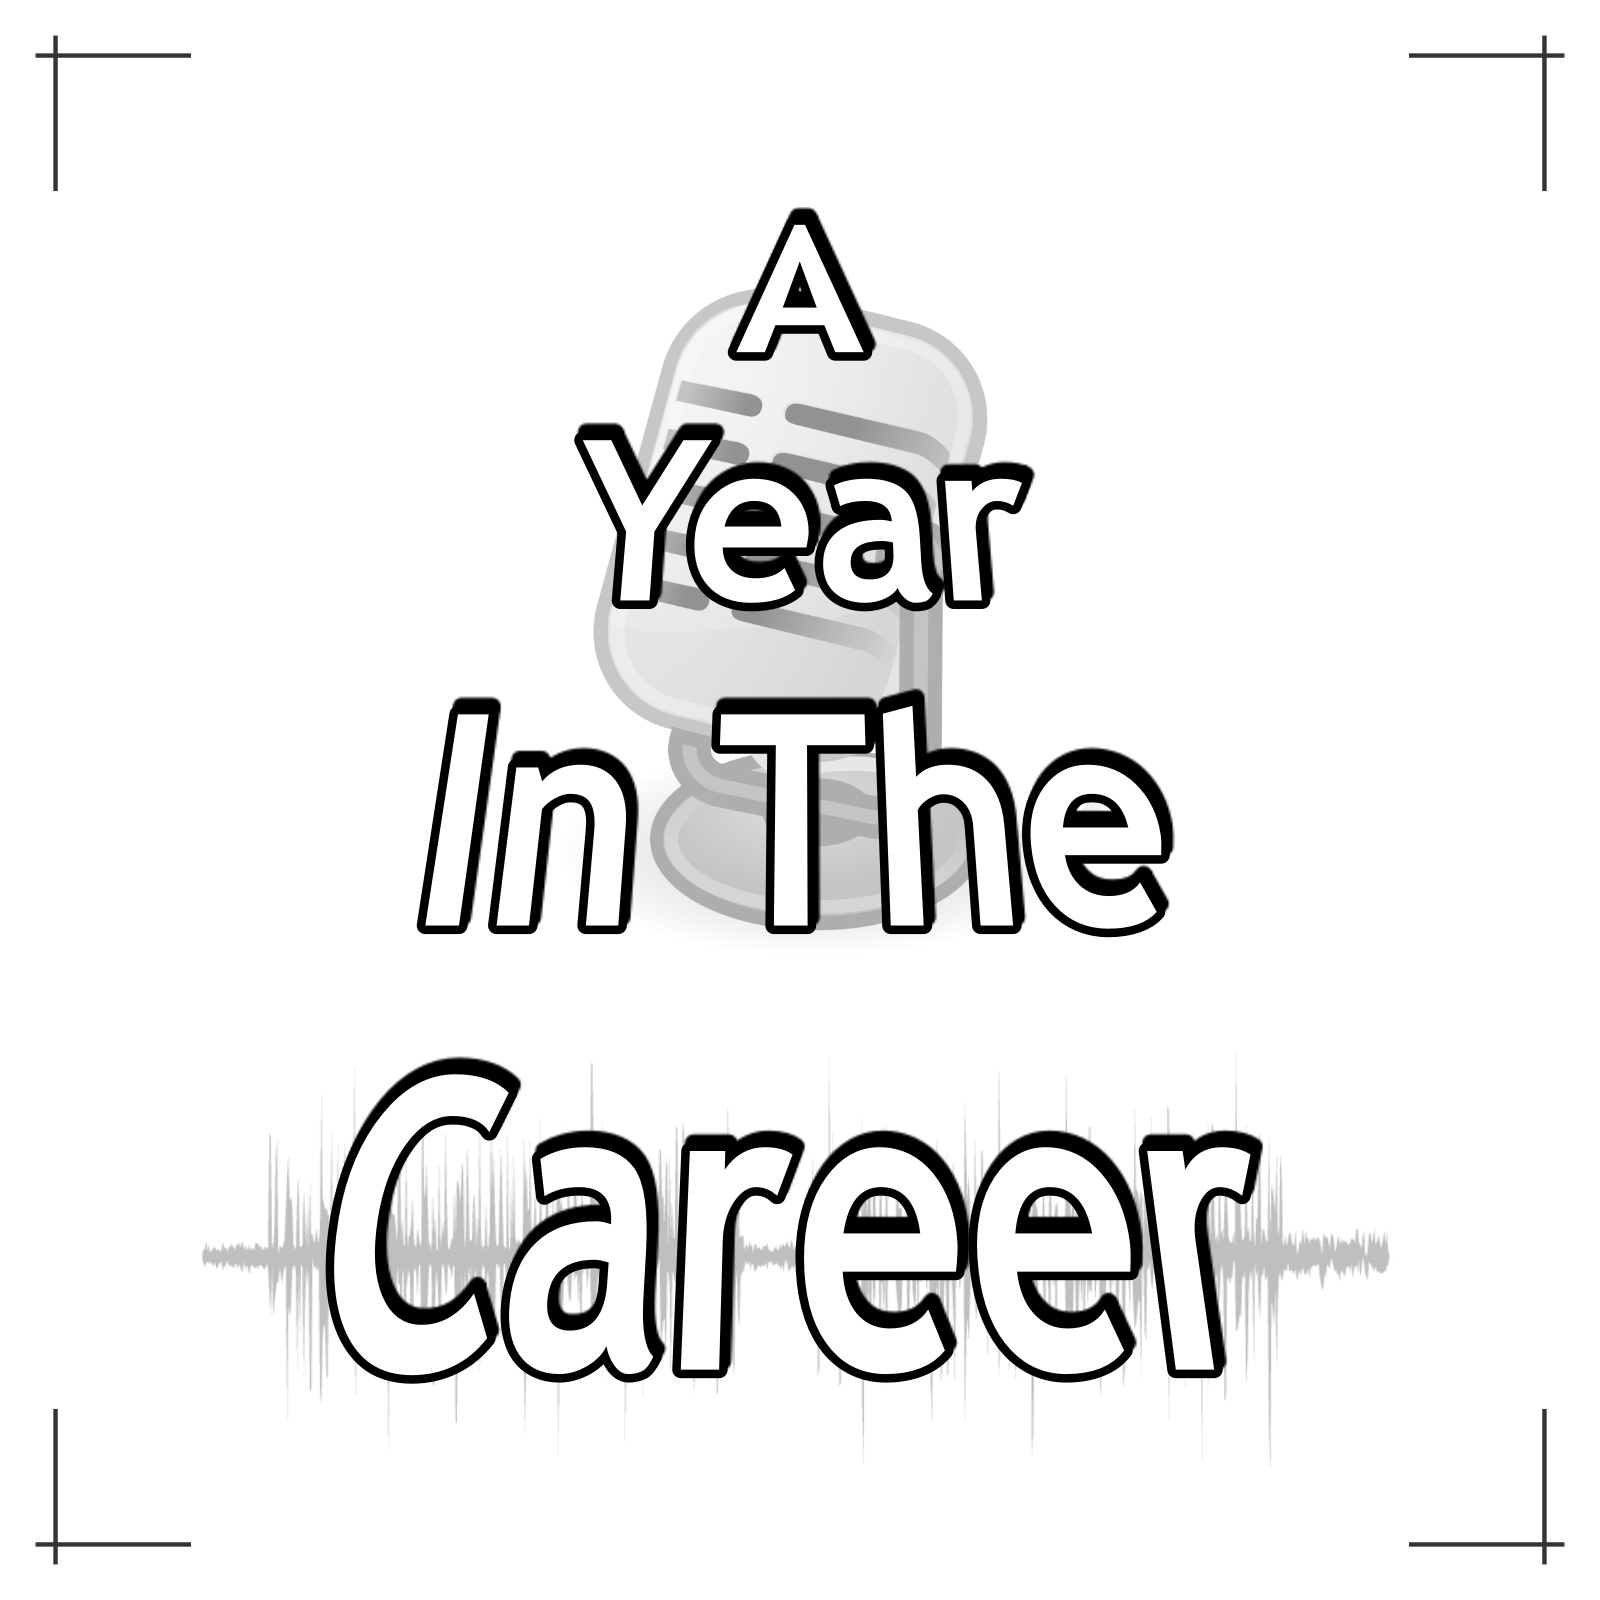 A Year In The Career - An Introduction